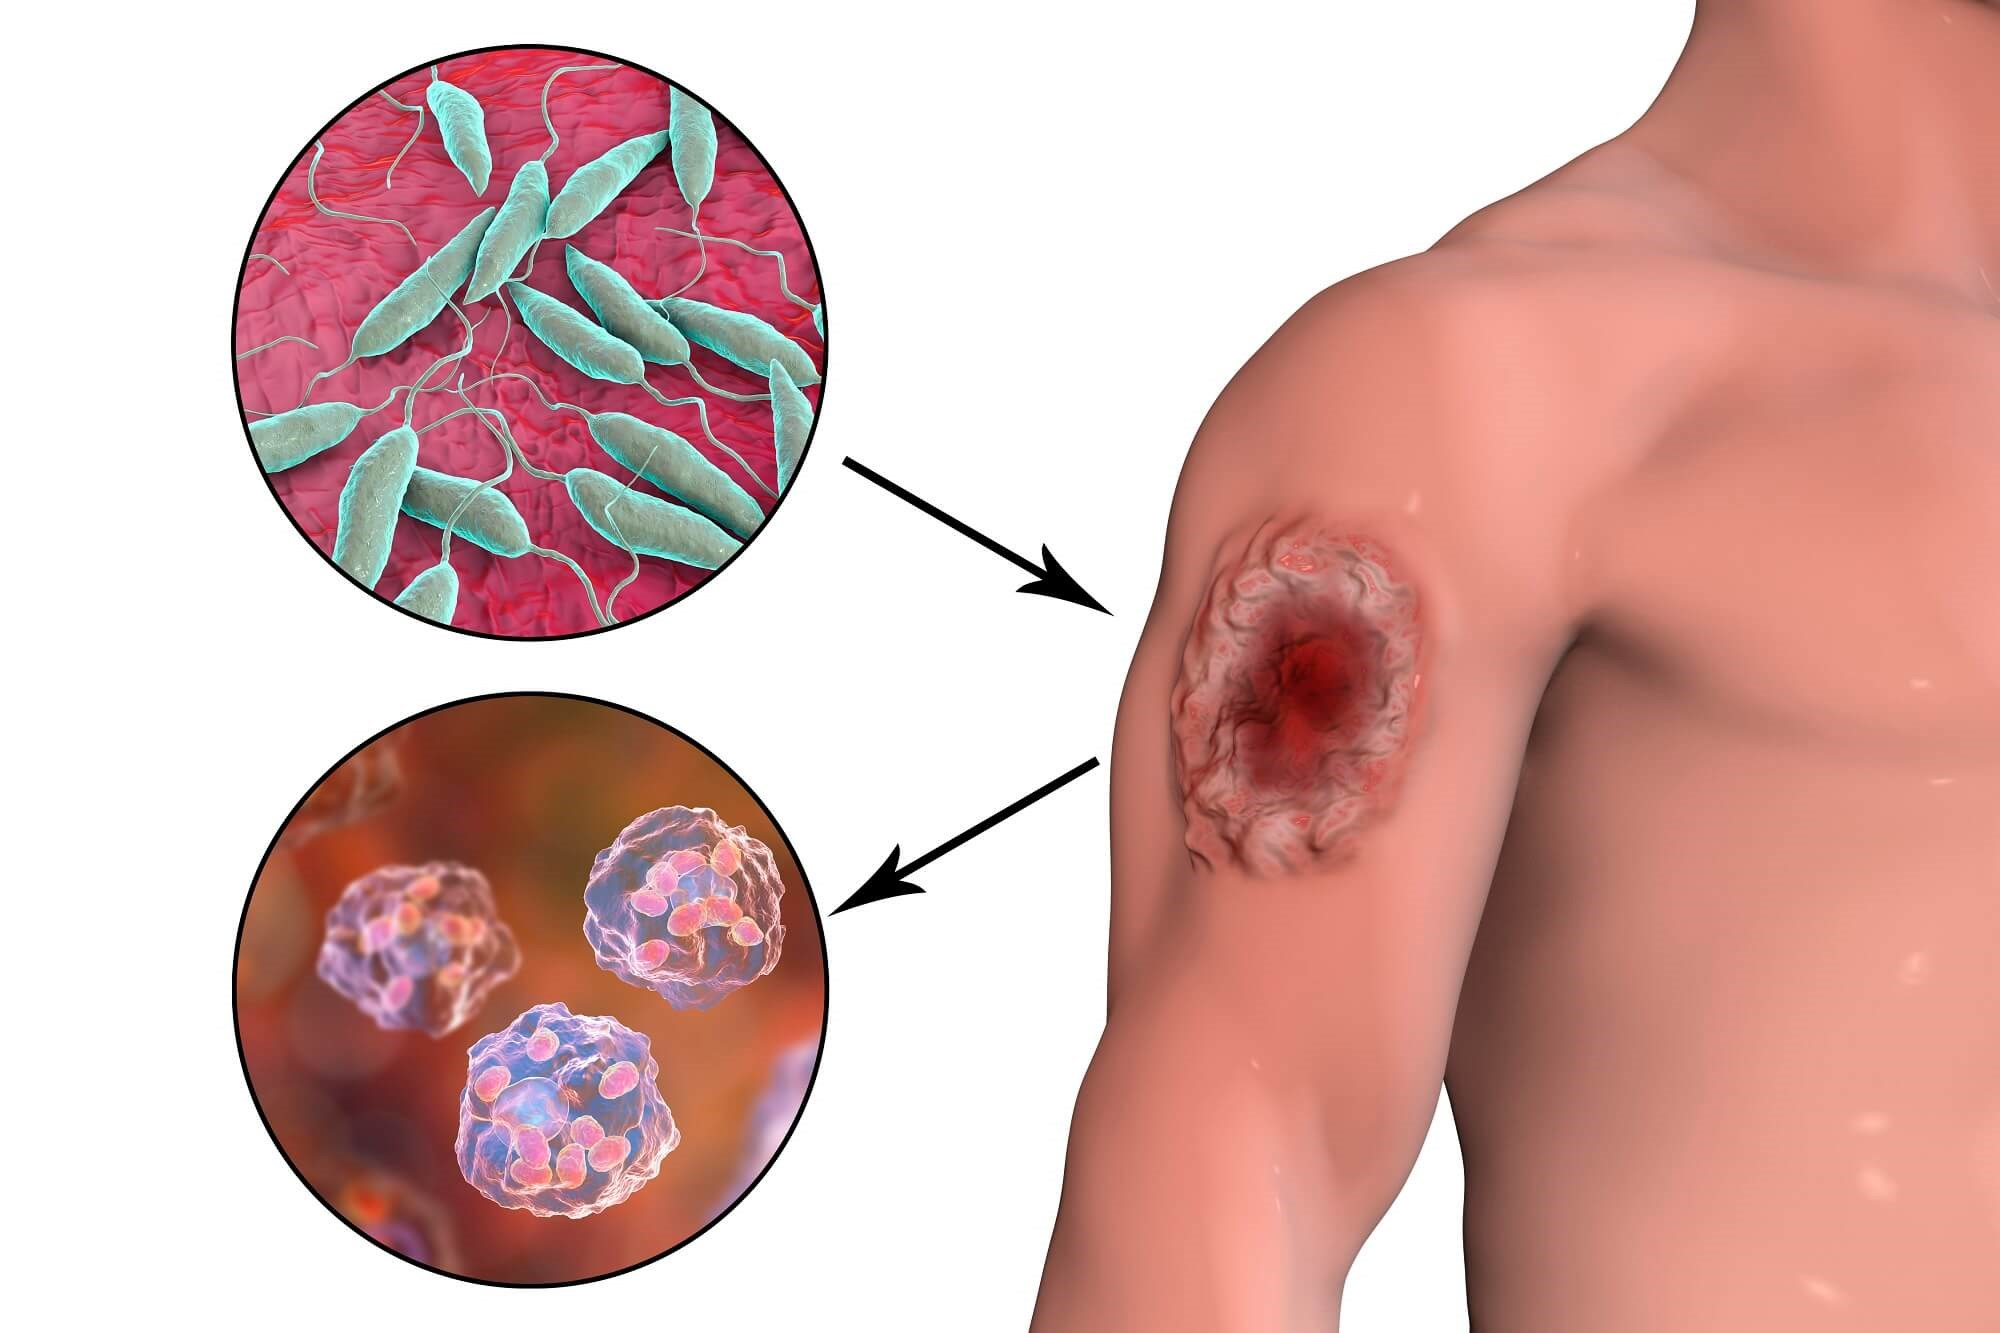 Treatment for cutaneous leishmaniasis caused by Leishmania braziliensis, using 15% paromomycin-Aquaphilic, was superior to a negative vehicle control.